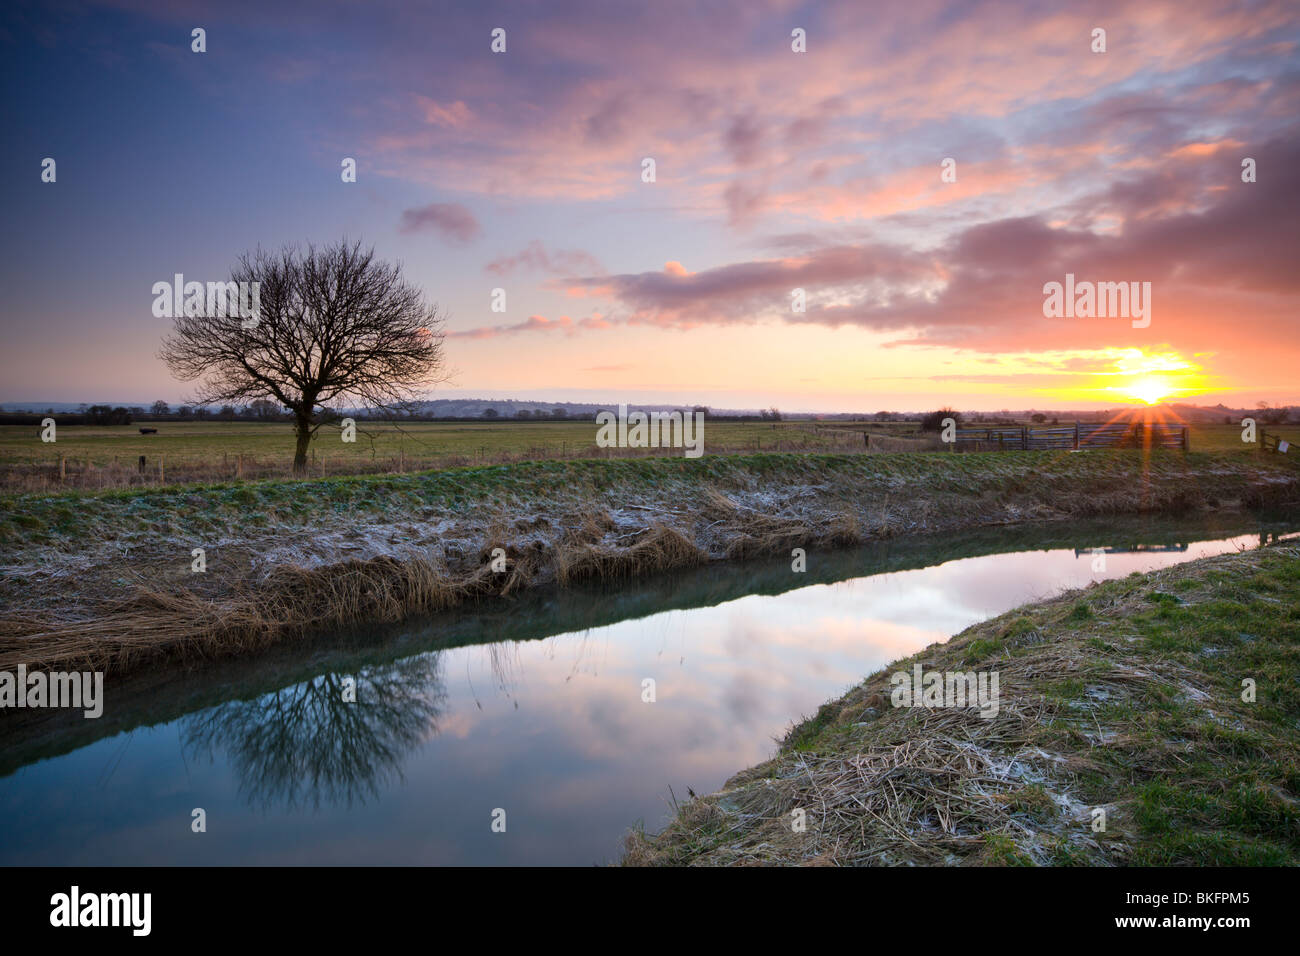 Sunrise over the River Brue on the Somerset Levels, Glastonbury, Somerset, England. Winter (February) 2010. - Stock Image